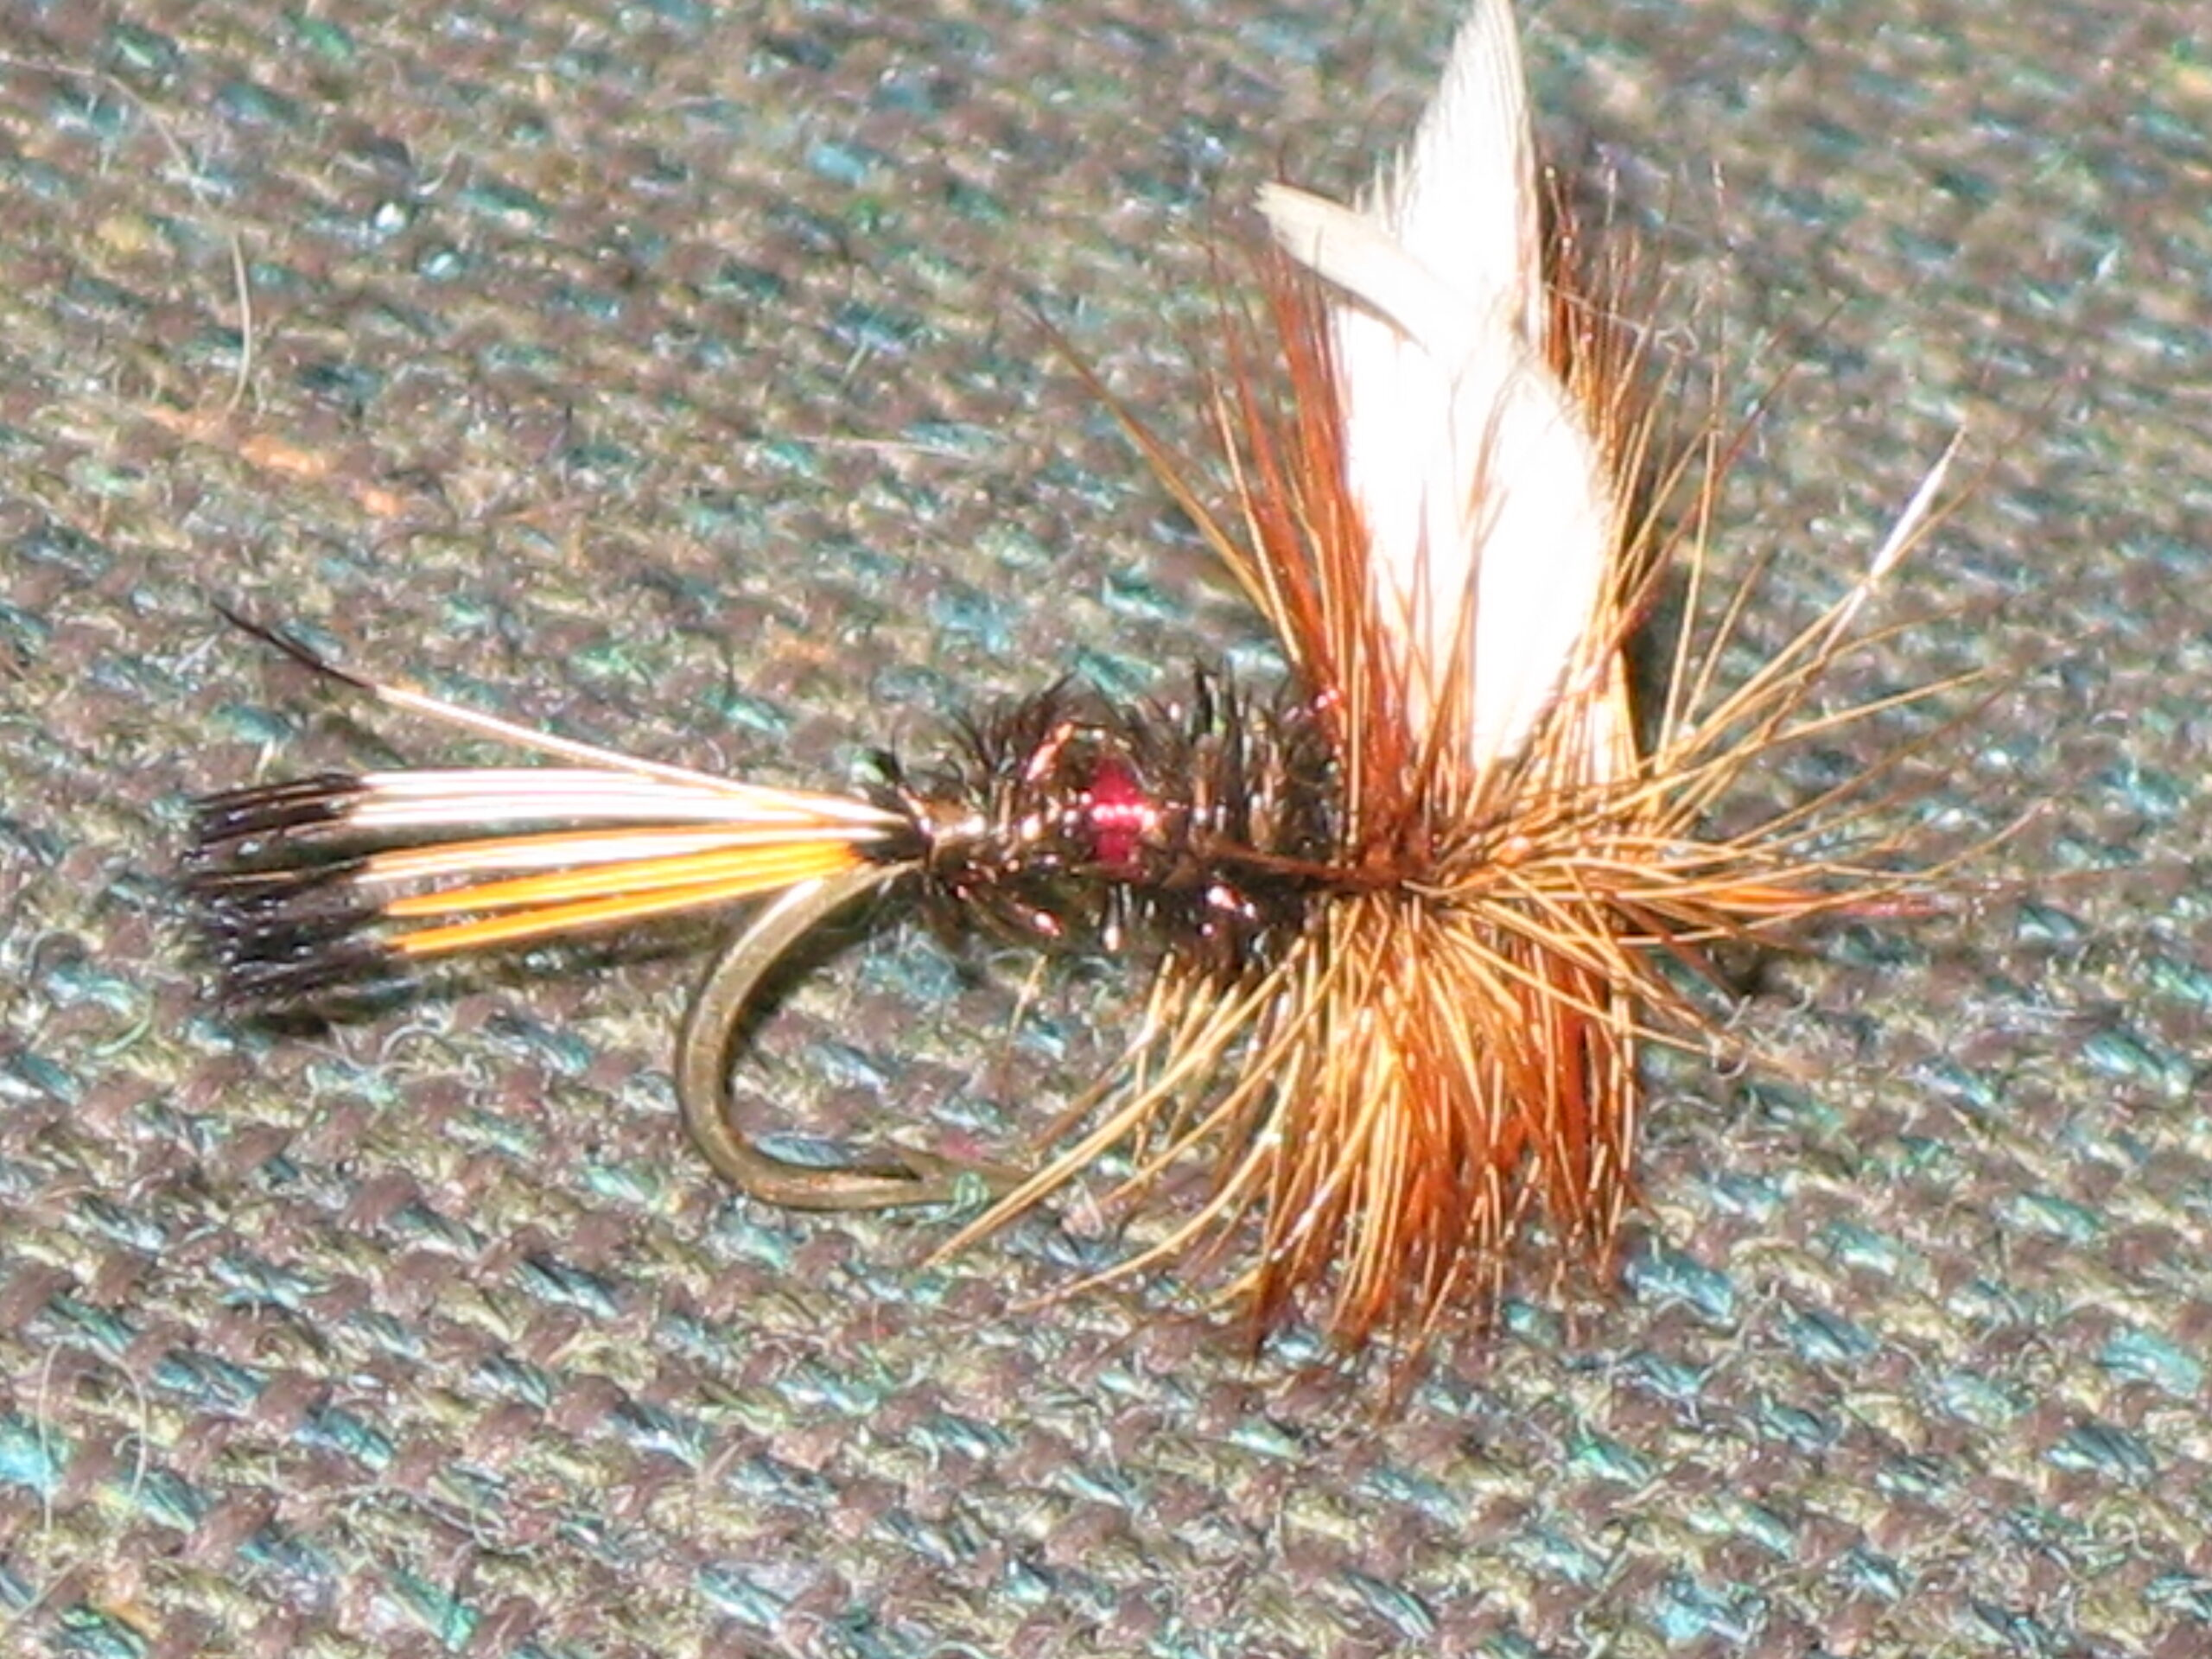 Hand tied Royal Coachman fly pattern